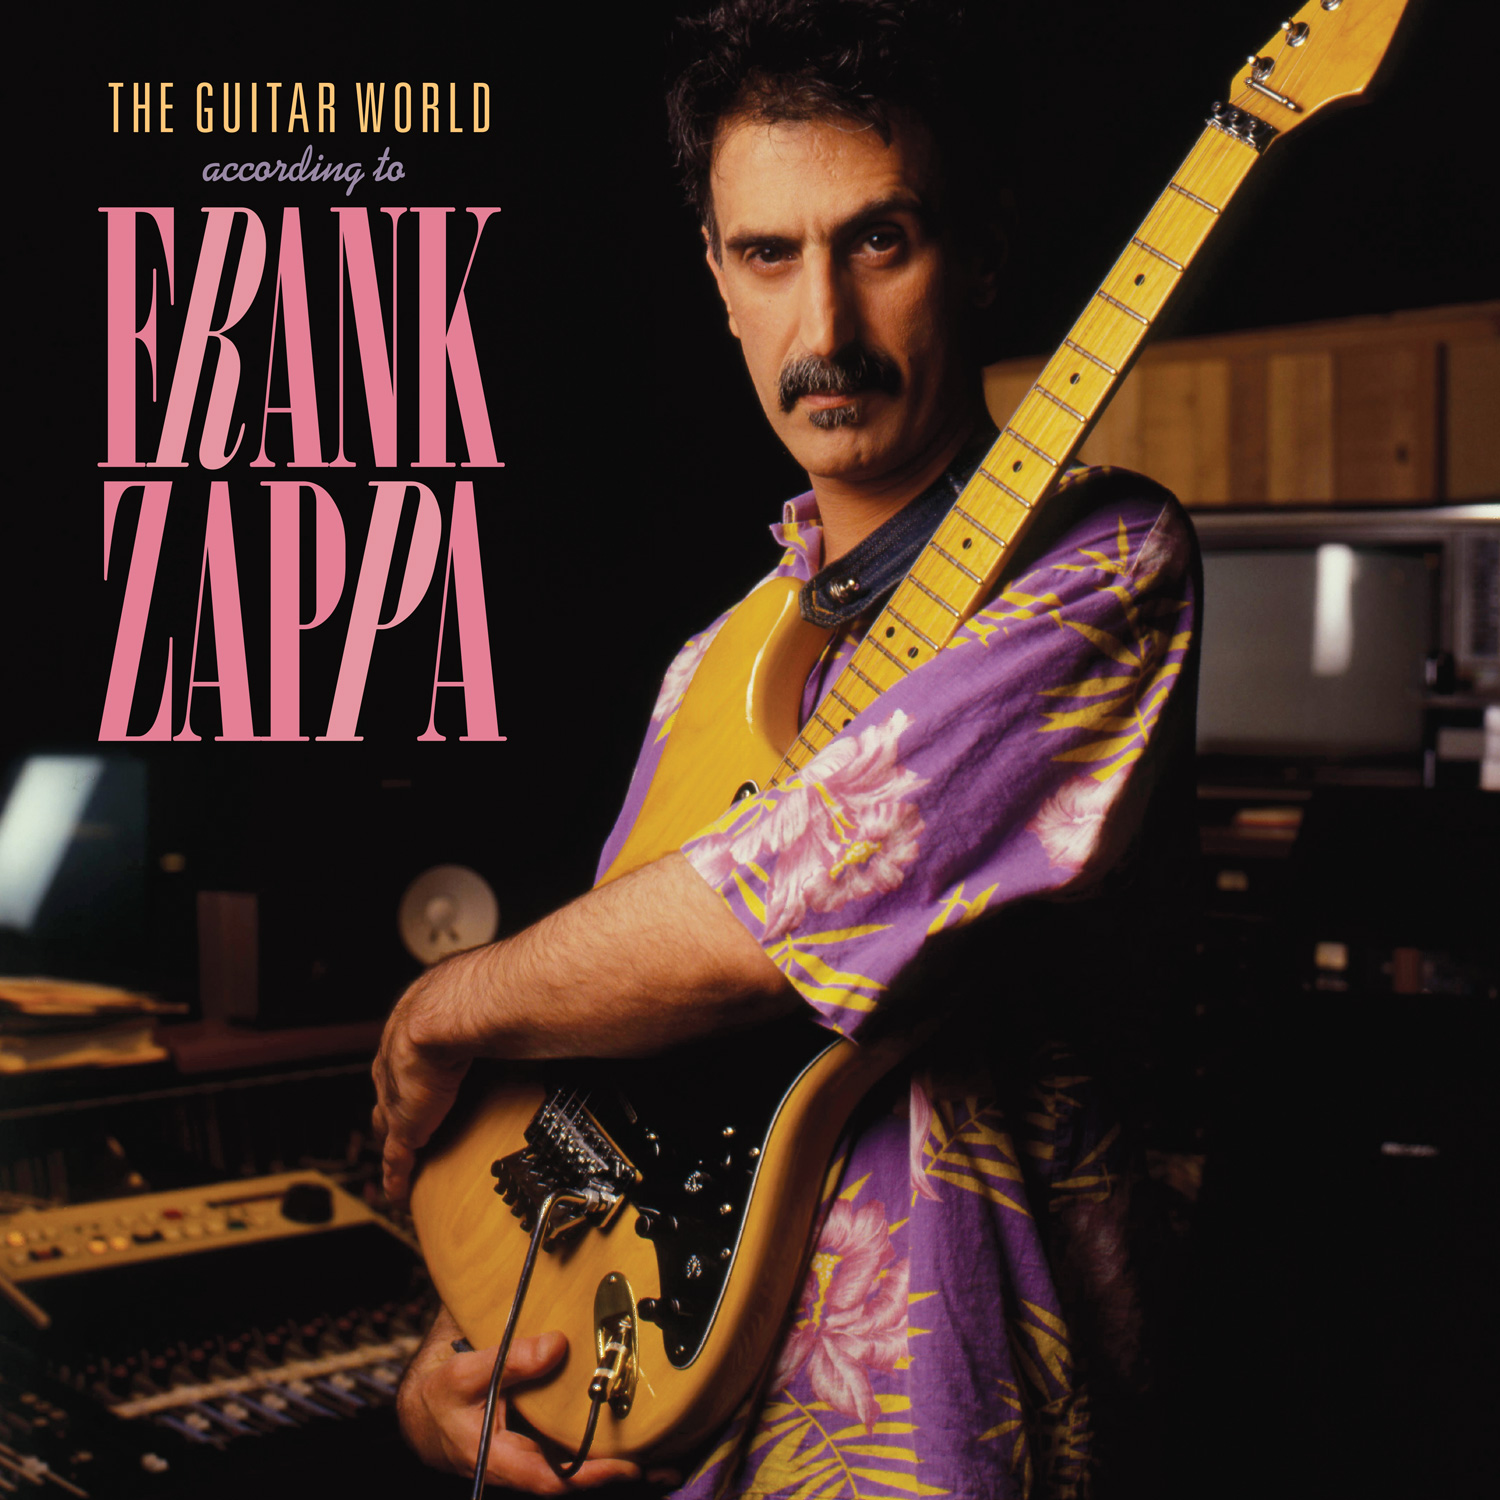 The Guitar World According To Frank Zappa LP